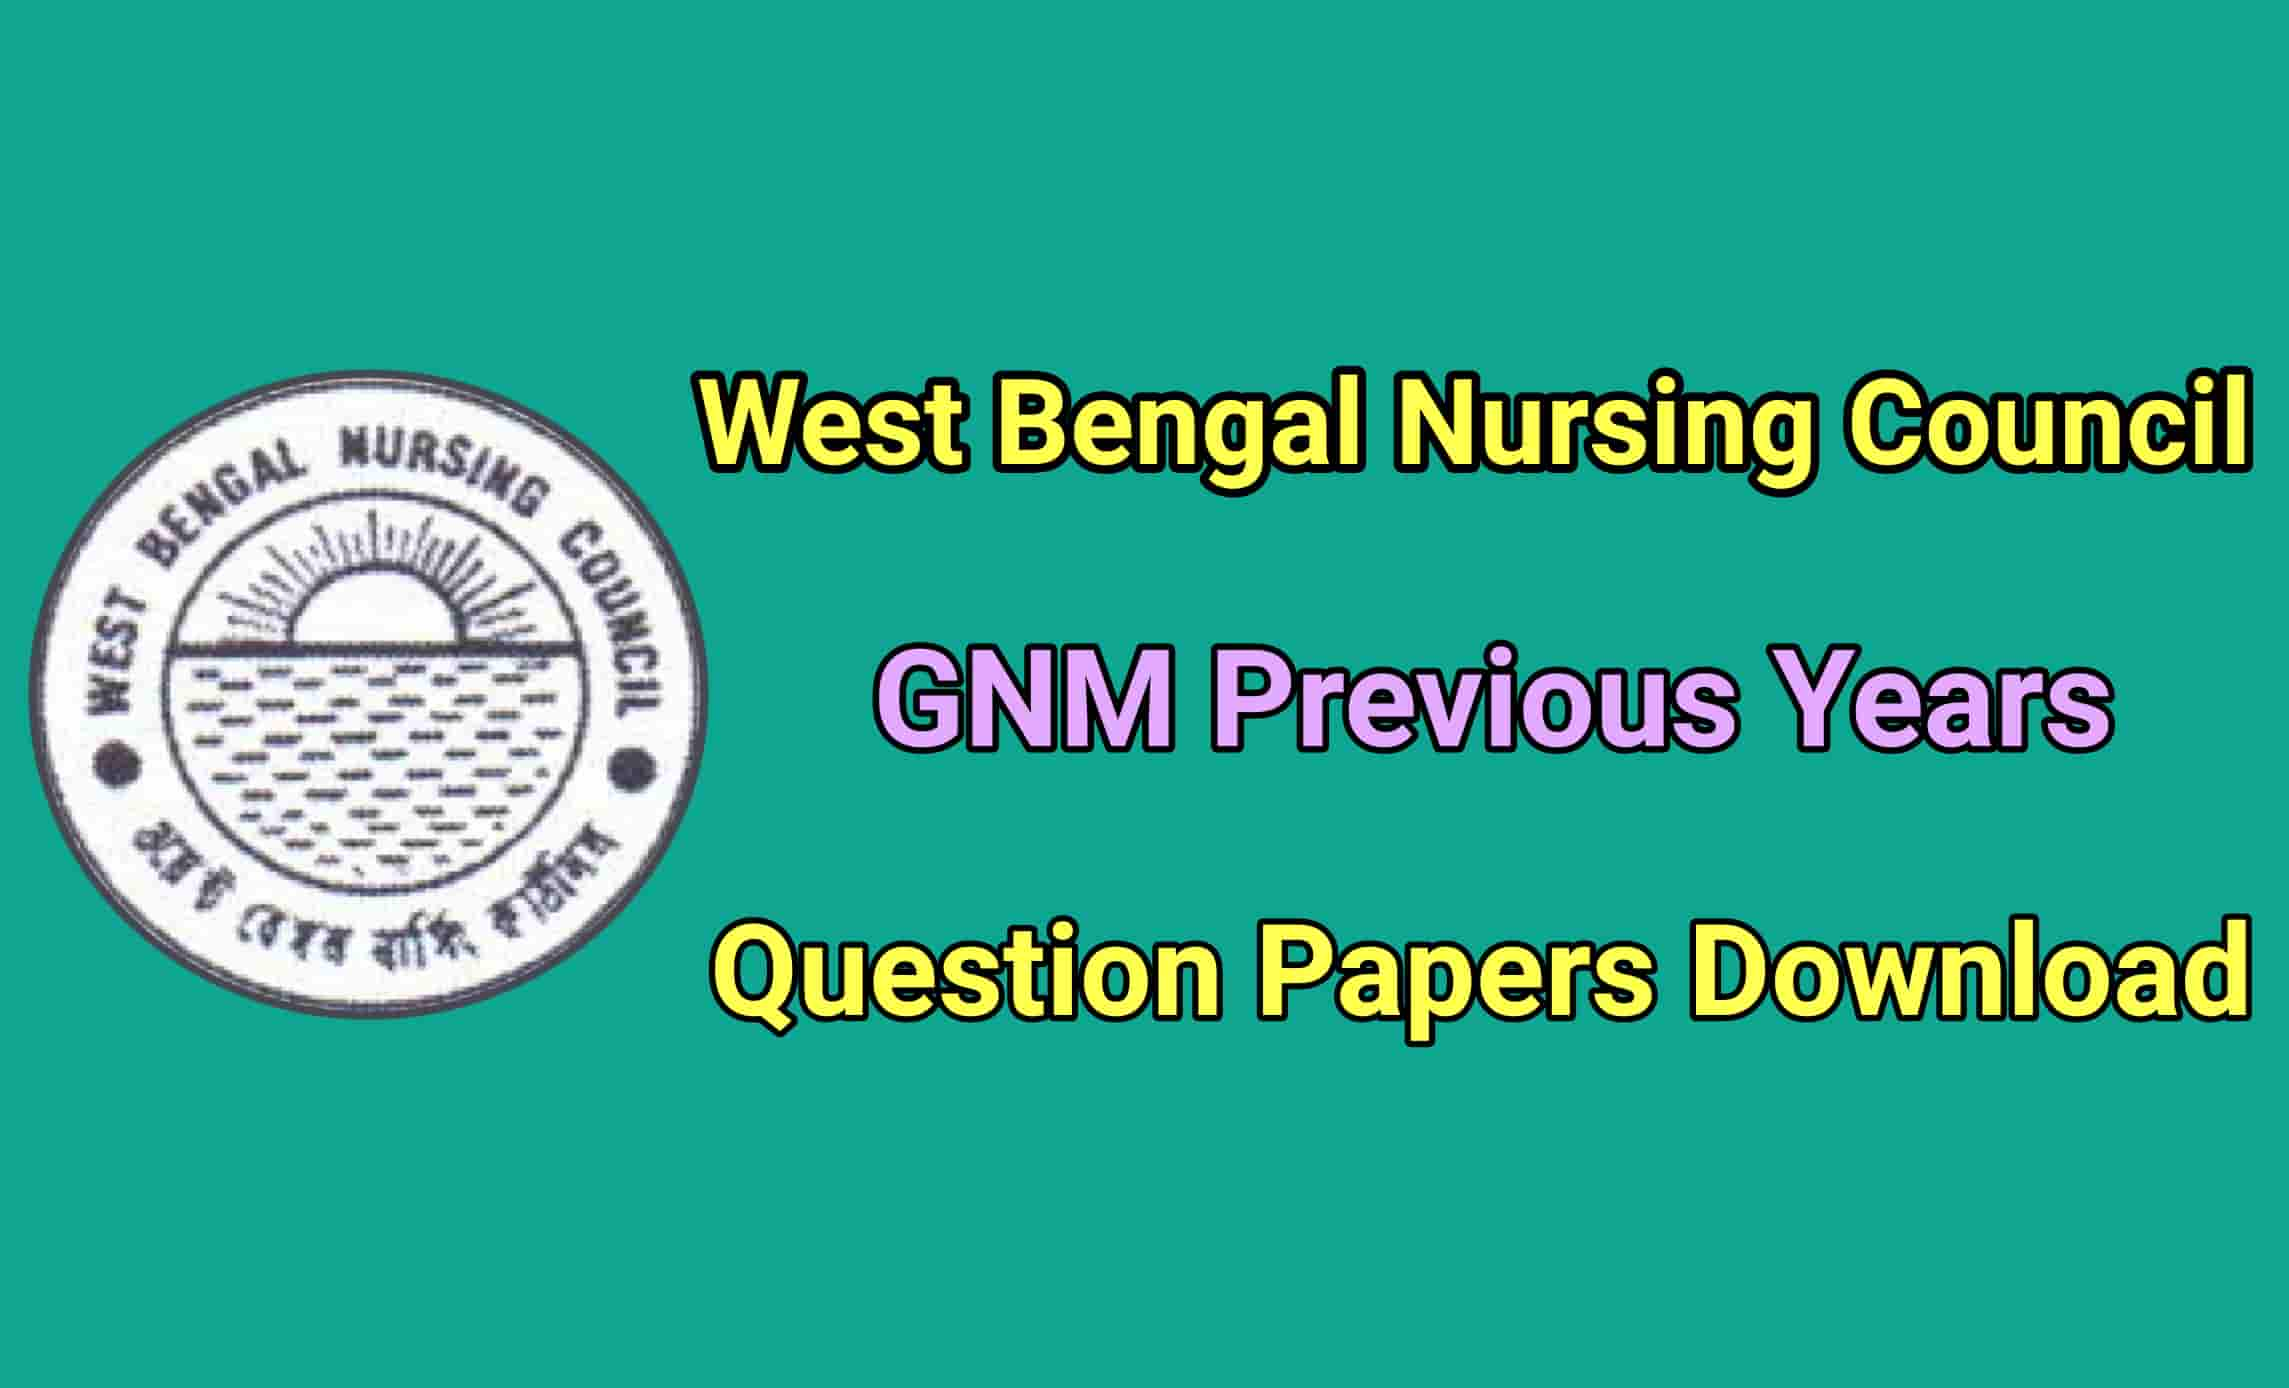 WBNC GNM Question Papers